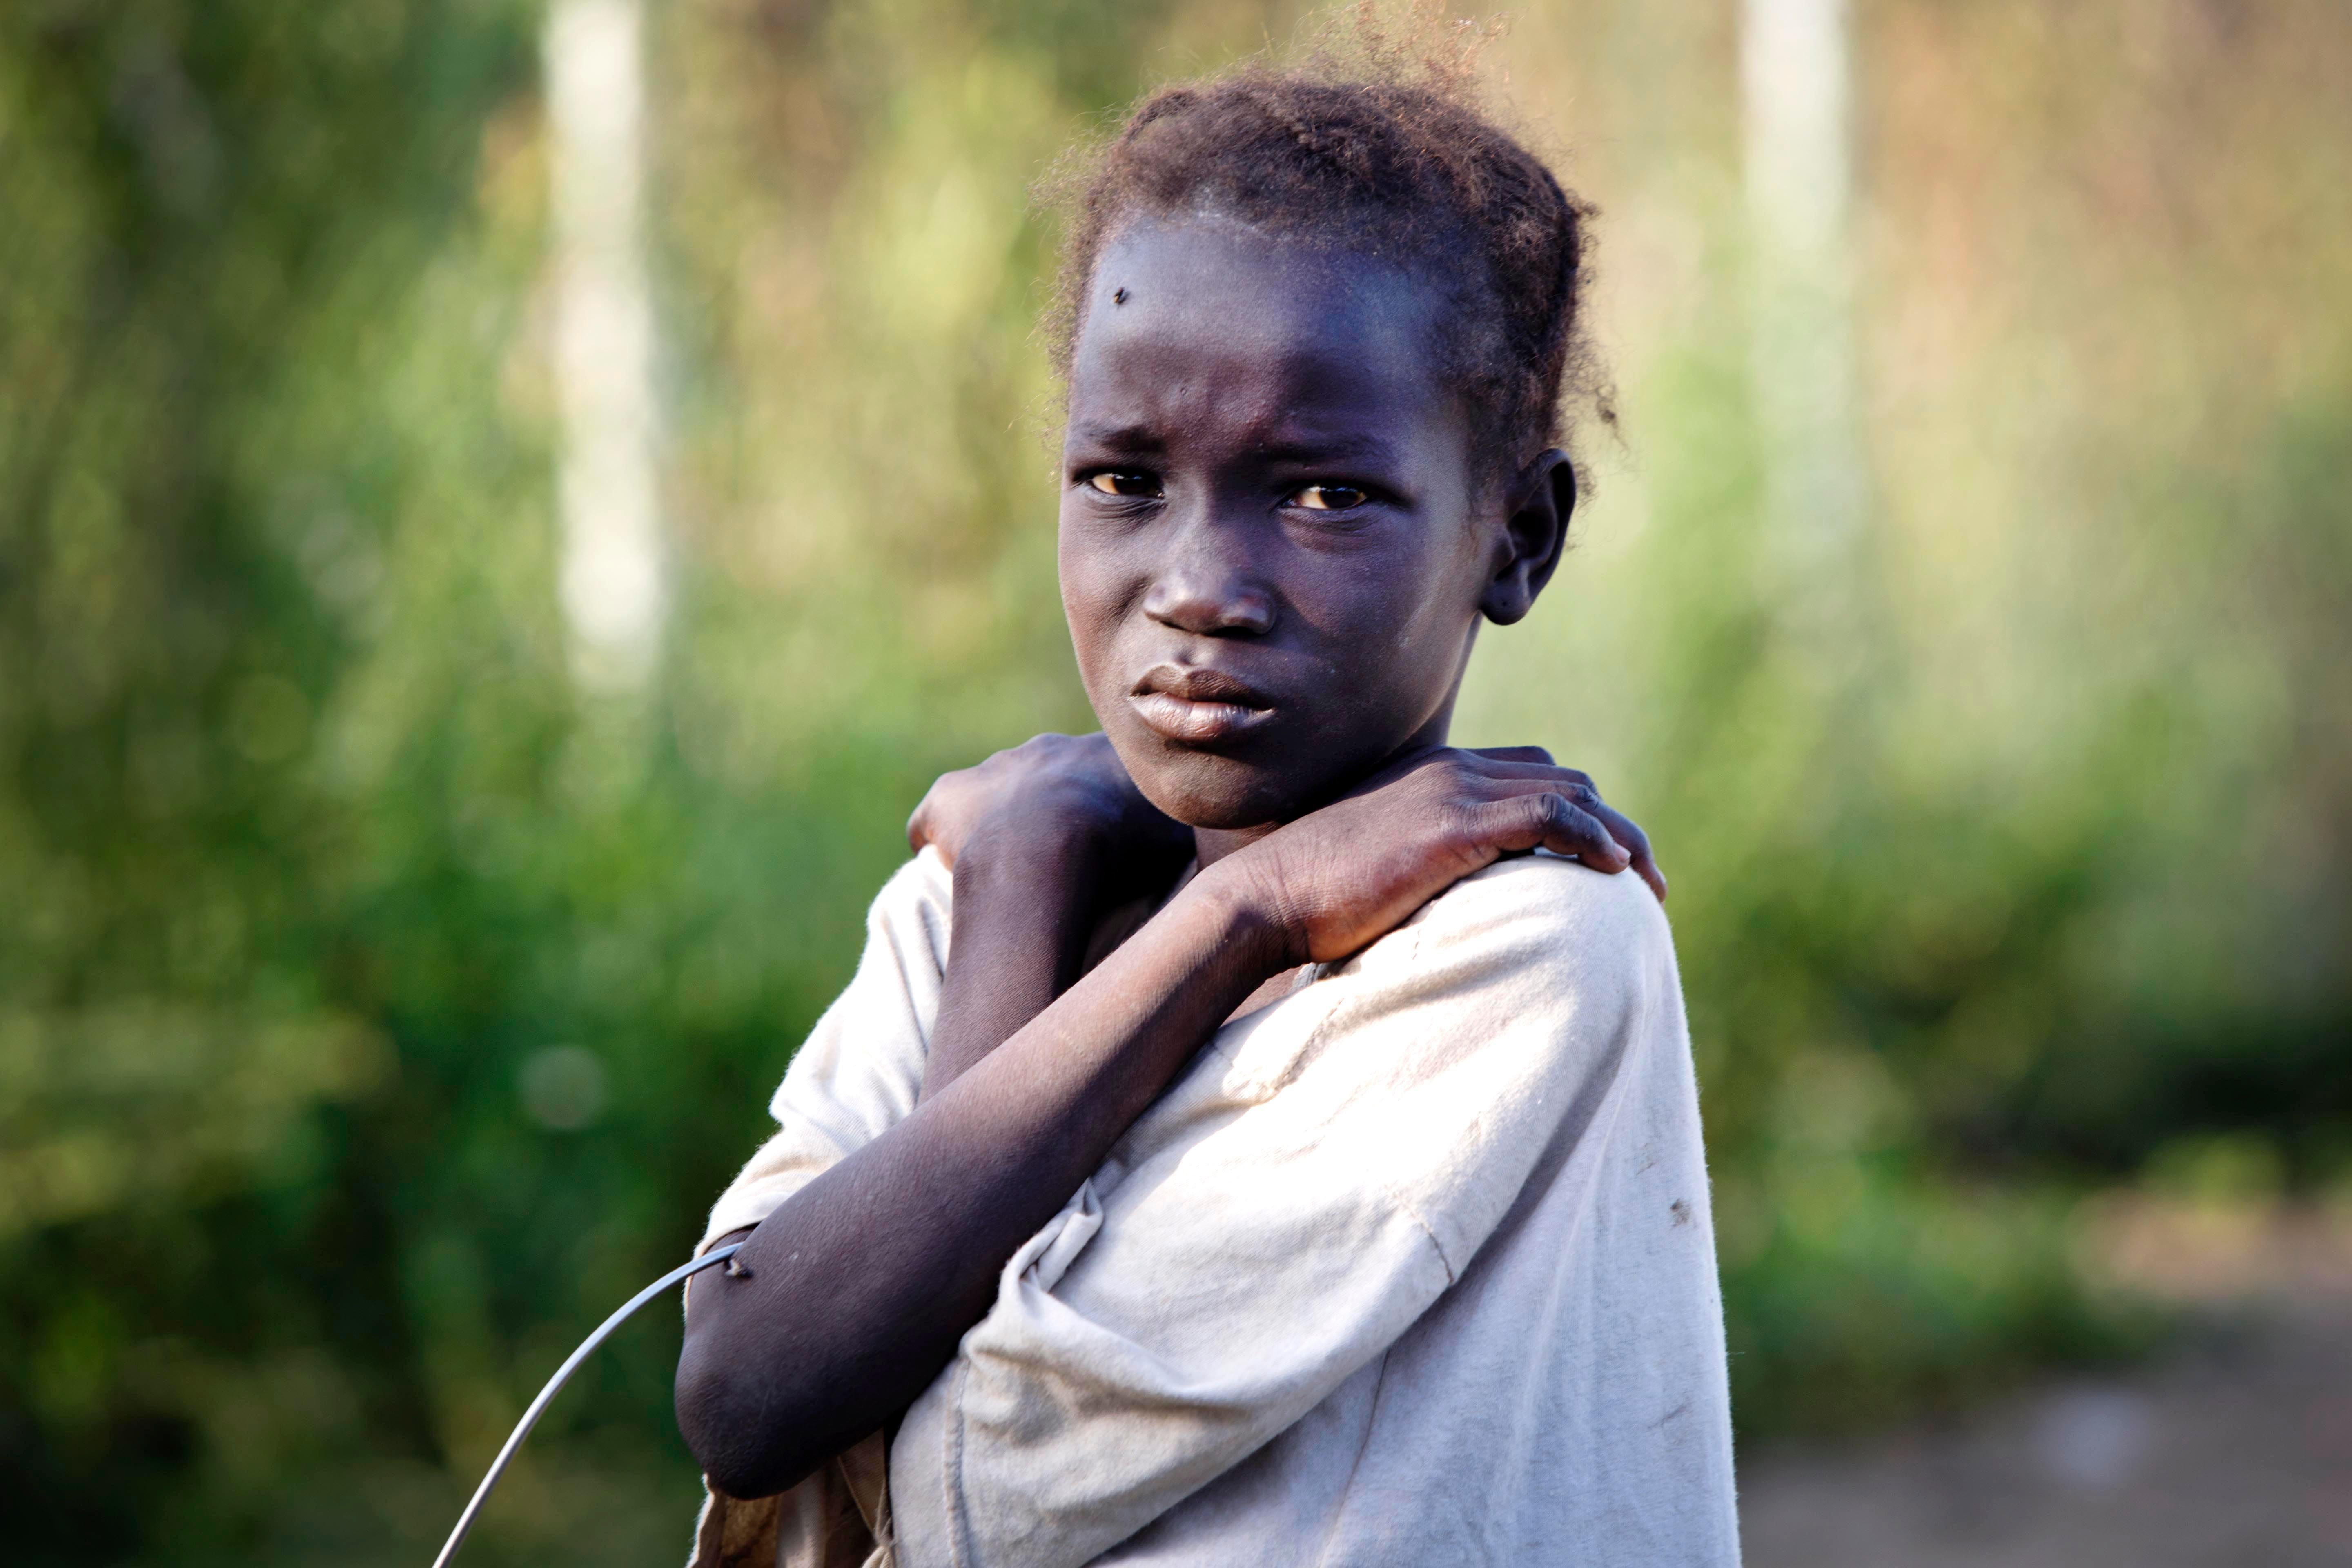 On 22 October 2016, a young girl, who has just arrived from Leer, where there is heavy fighting, poses for a photograph at the gate of  the  UN Protection of Civilian Camp (POC) Bentiu, South Sudan. Recent fighting  in Leer between Governemnt forces and rebel groups have forced thousands more people into the UN camp in Bentiu that is now home to 105,000 people.